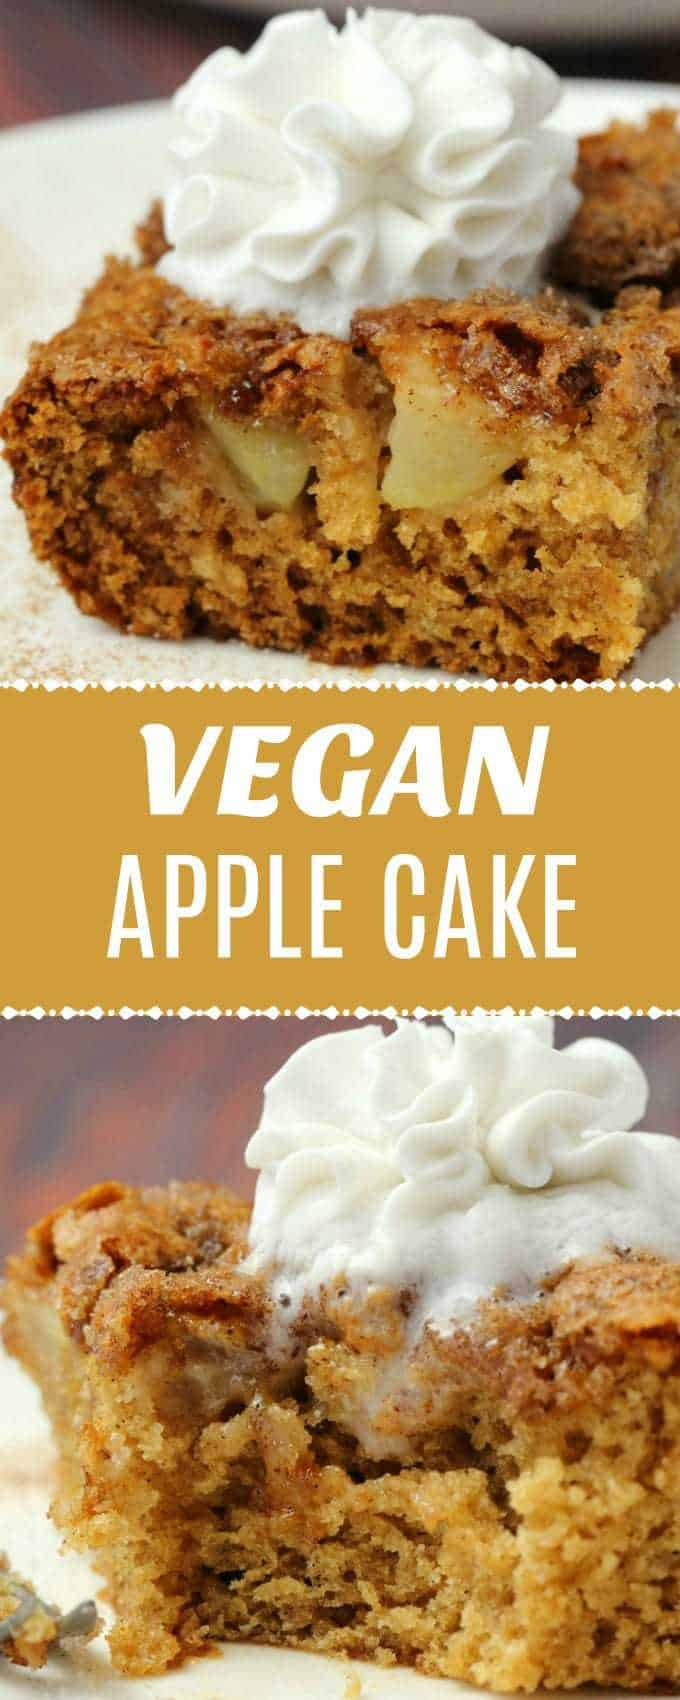 Light and fluffy vegan apple cake with a cinnamon sugar topping. Packed with fresh apple flavor and absolutely divine served warm with vegan whipped cream. | lovingitvegan.com